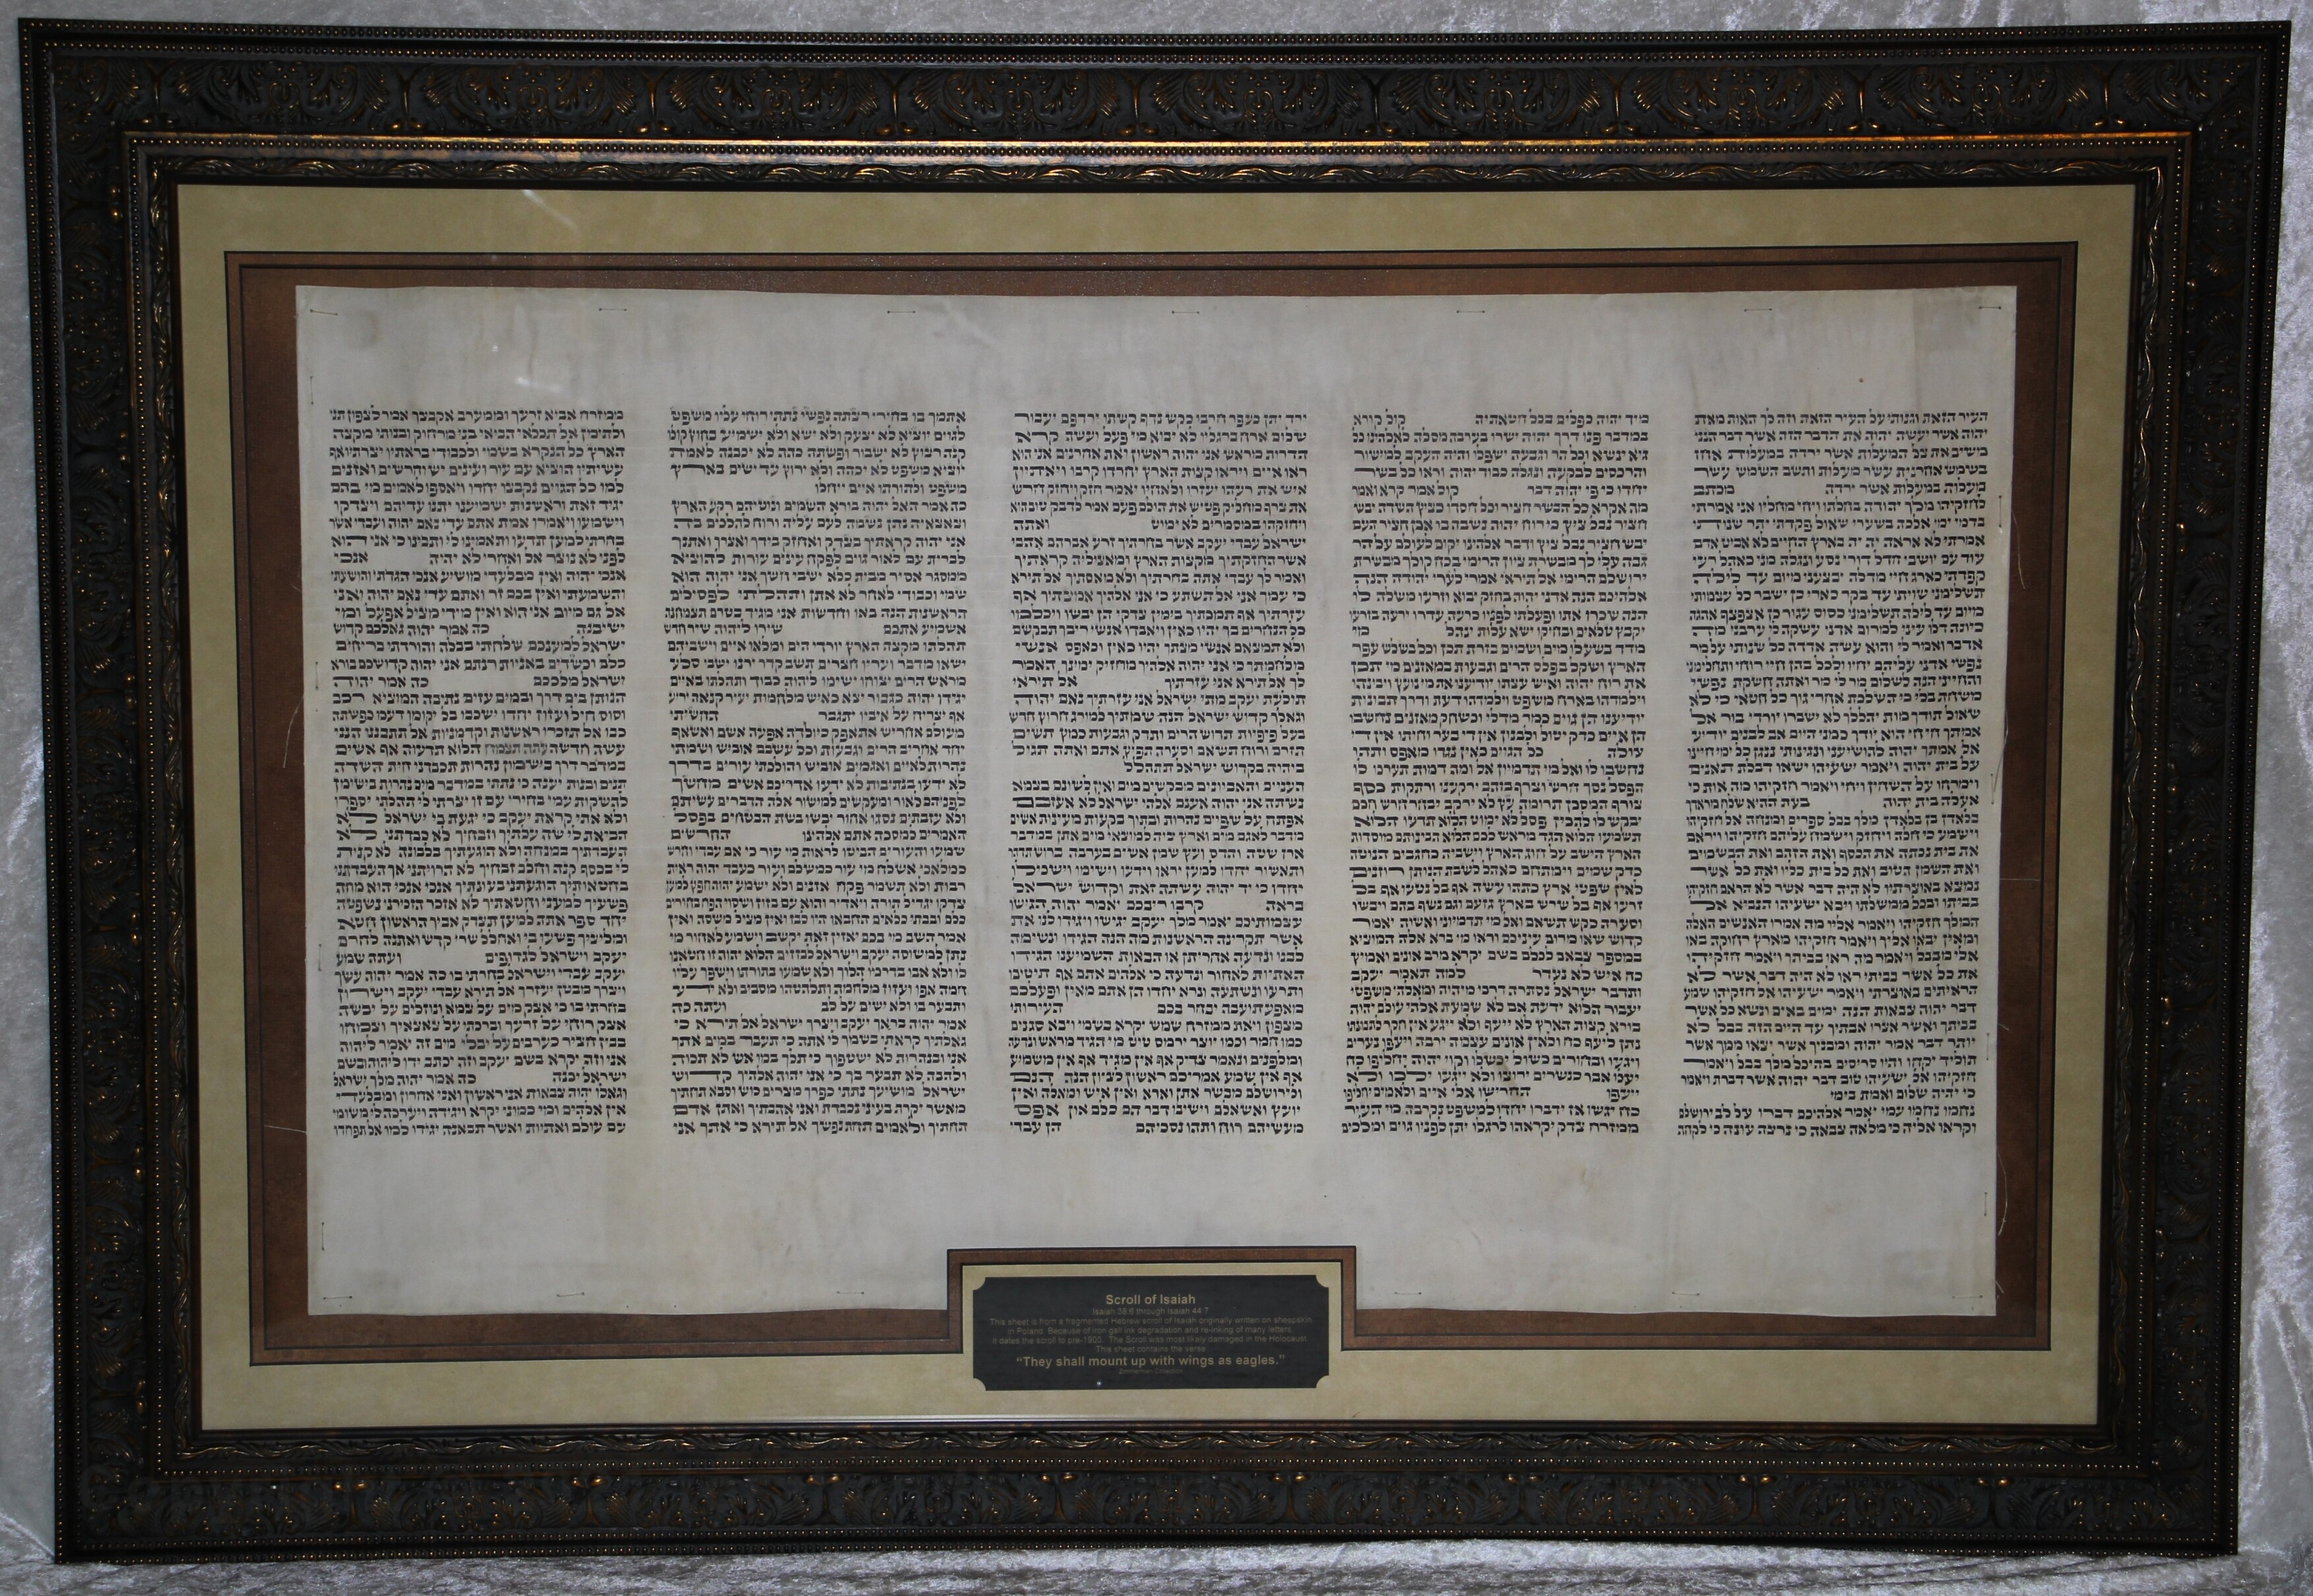 """Framed sheet from a Scroll of Isaiah """"They Shall Mount Up with Wings as Eagles"""" Isaiah 44:8b through Isaiah 50:2b"""